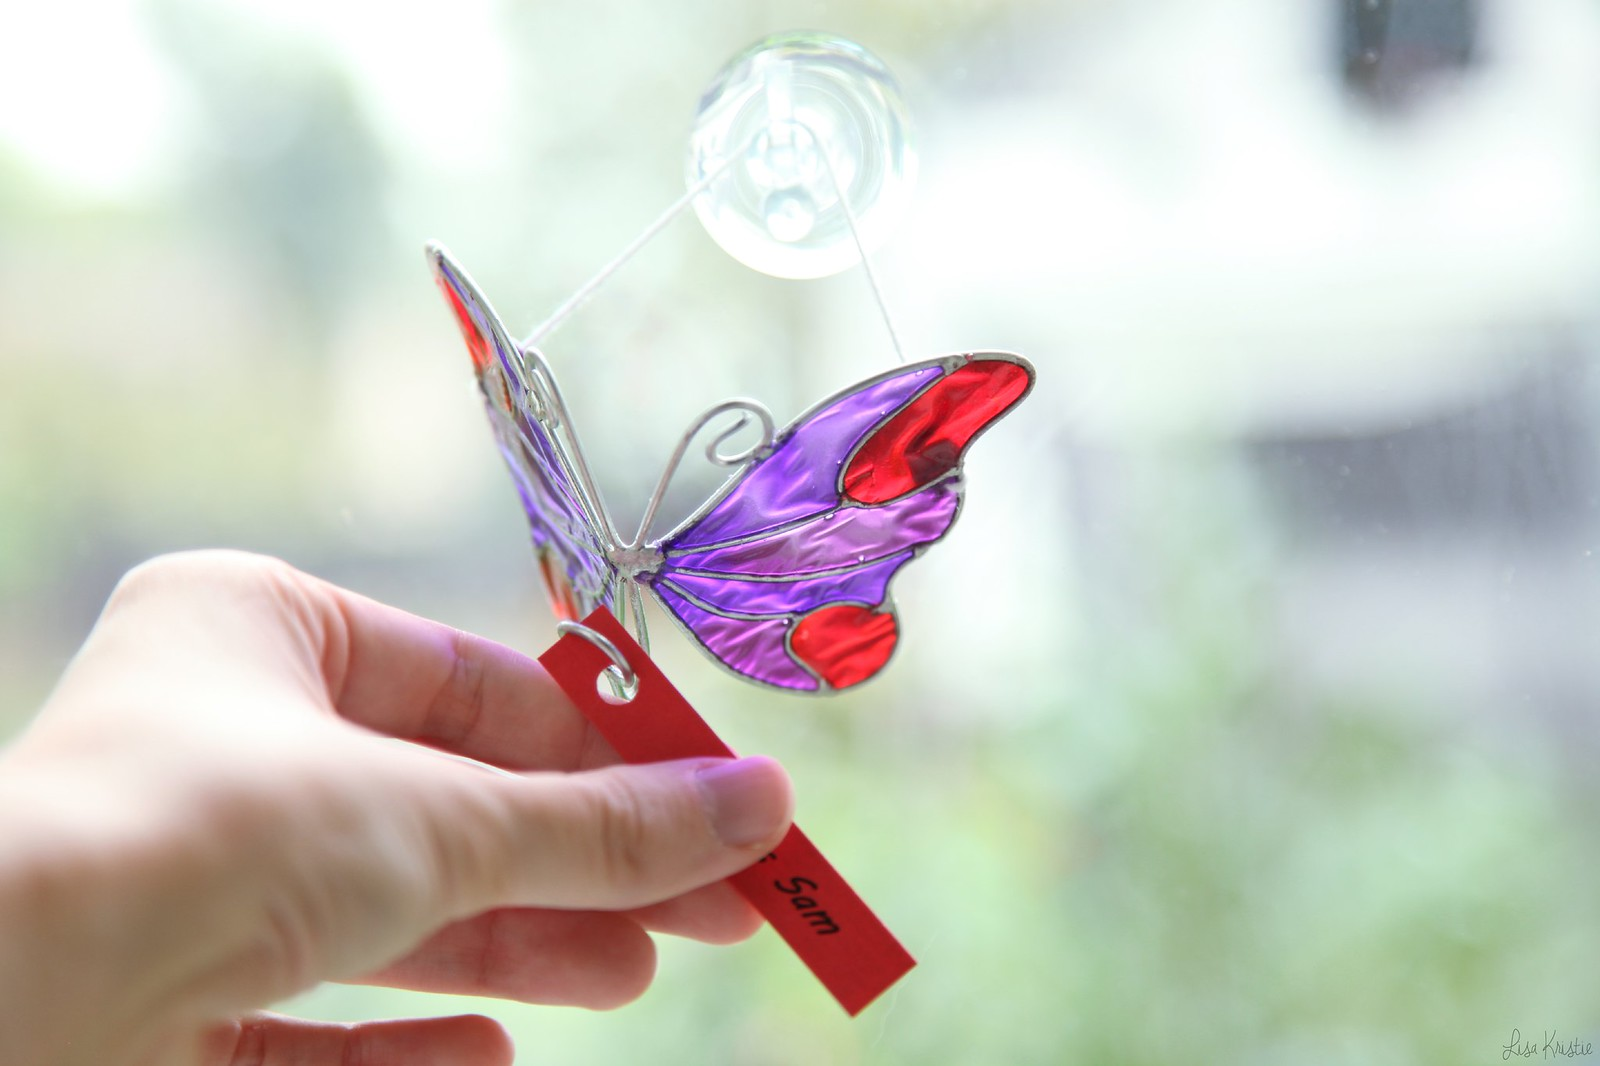 glass butterfly colorful red purple memorial baby stillbirth stillborn in memory of Sam